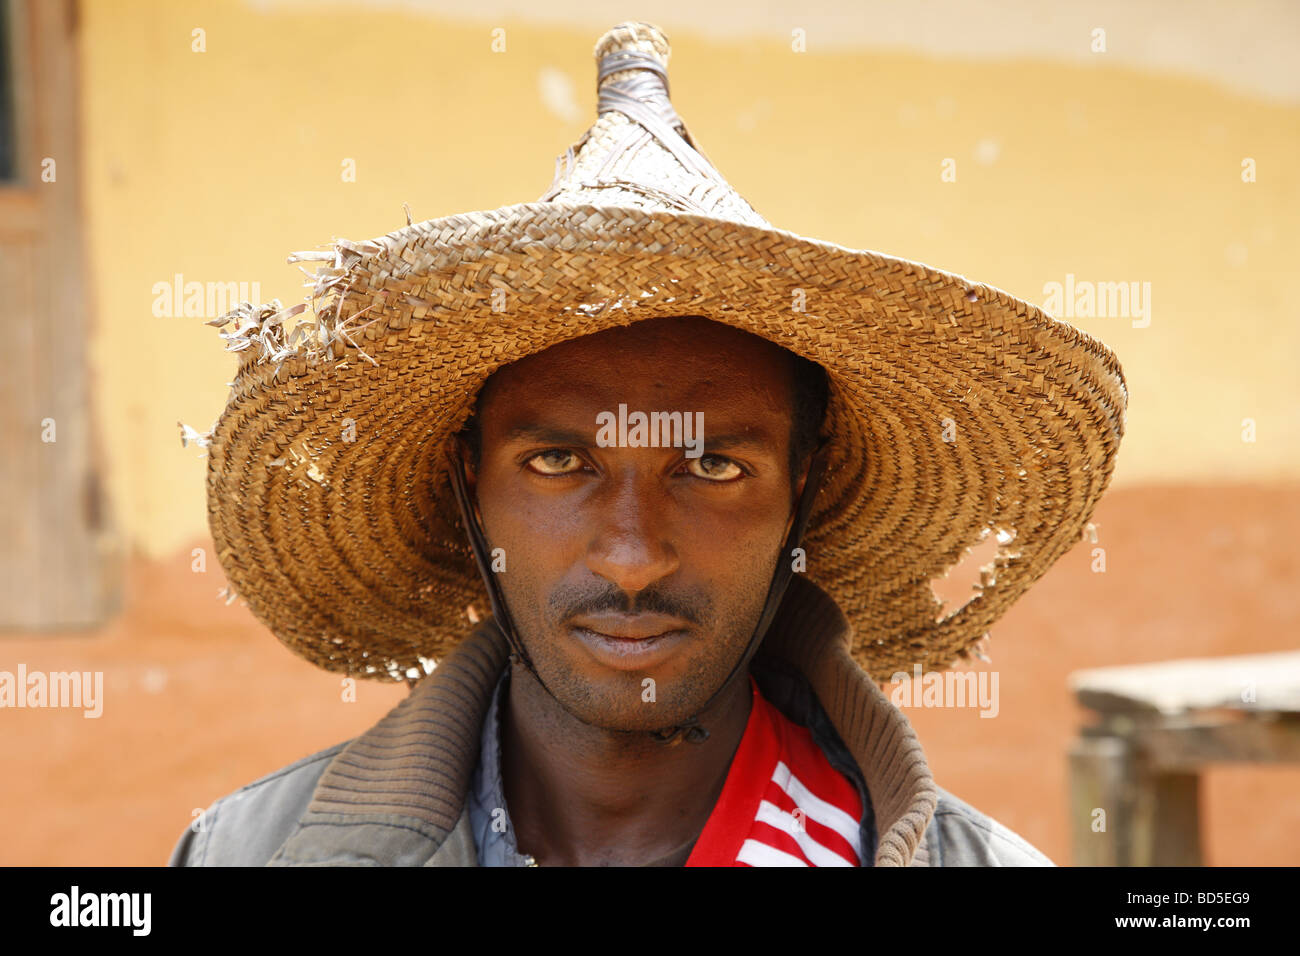 Man in a straw hat, portrait, Mbororo ethnic group, Bamenda, Cameroon, Africa - Stock Image